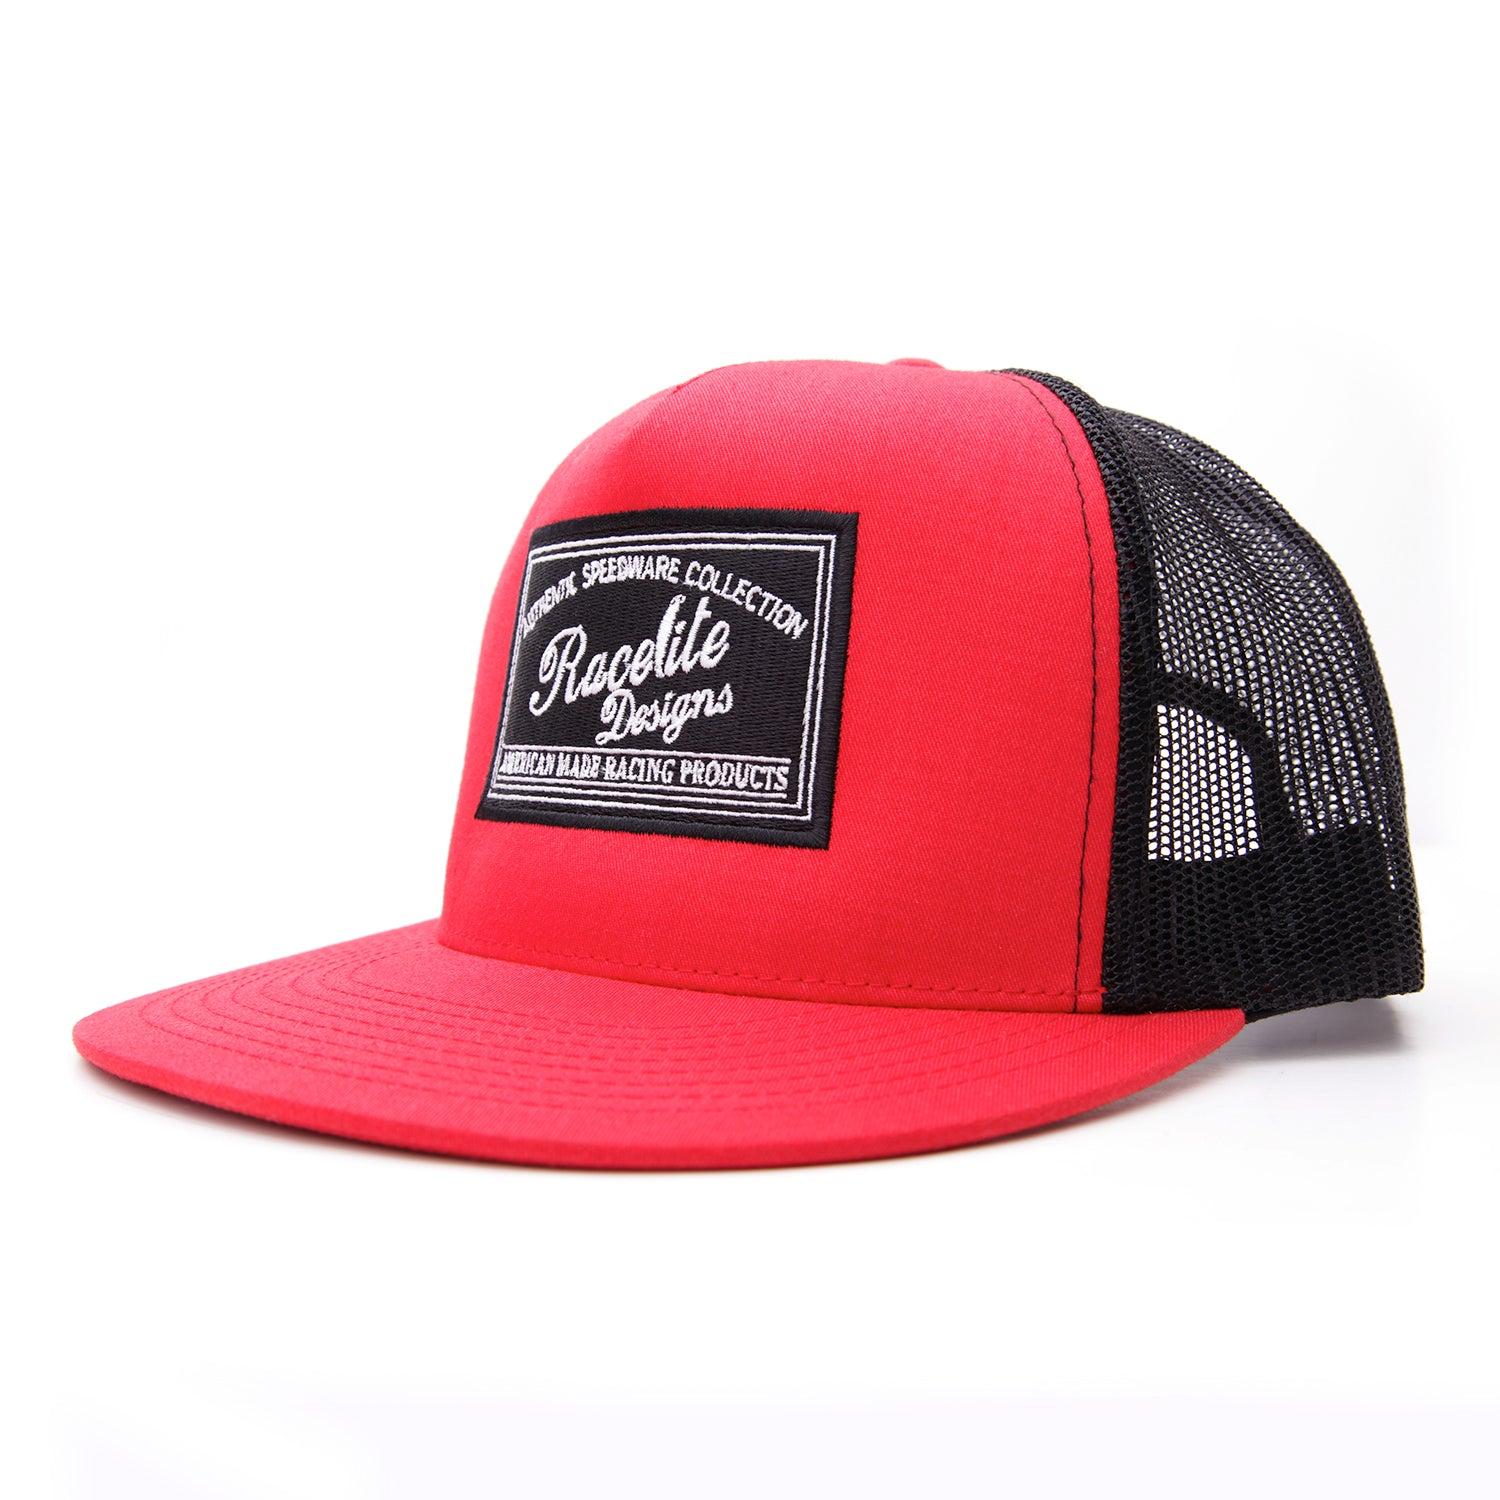 Racelite Designs Speedware Collection Red Flat Brim Side View